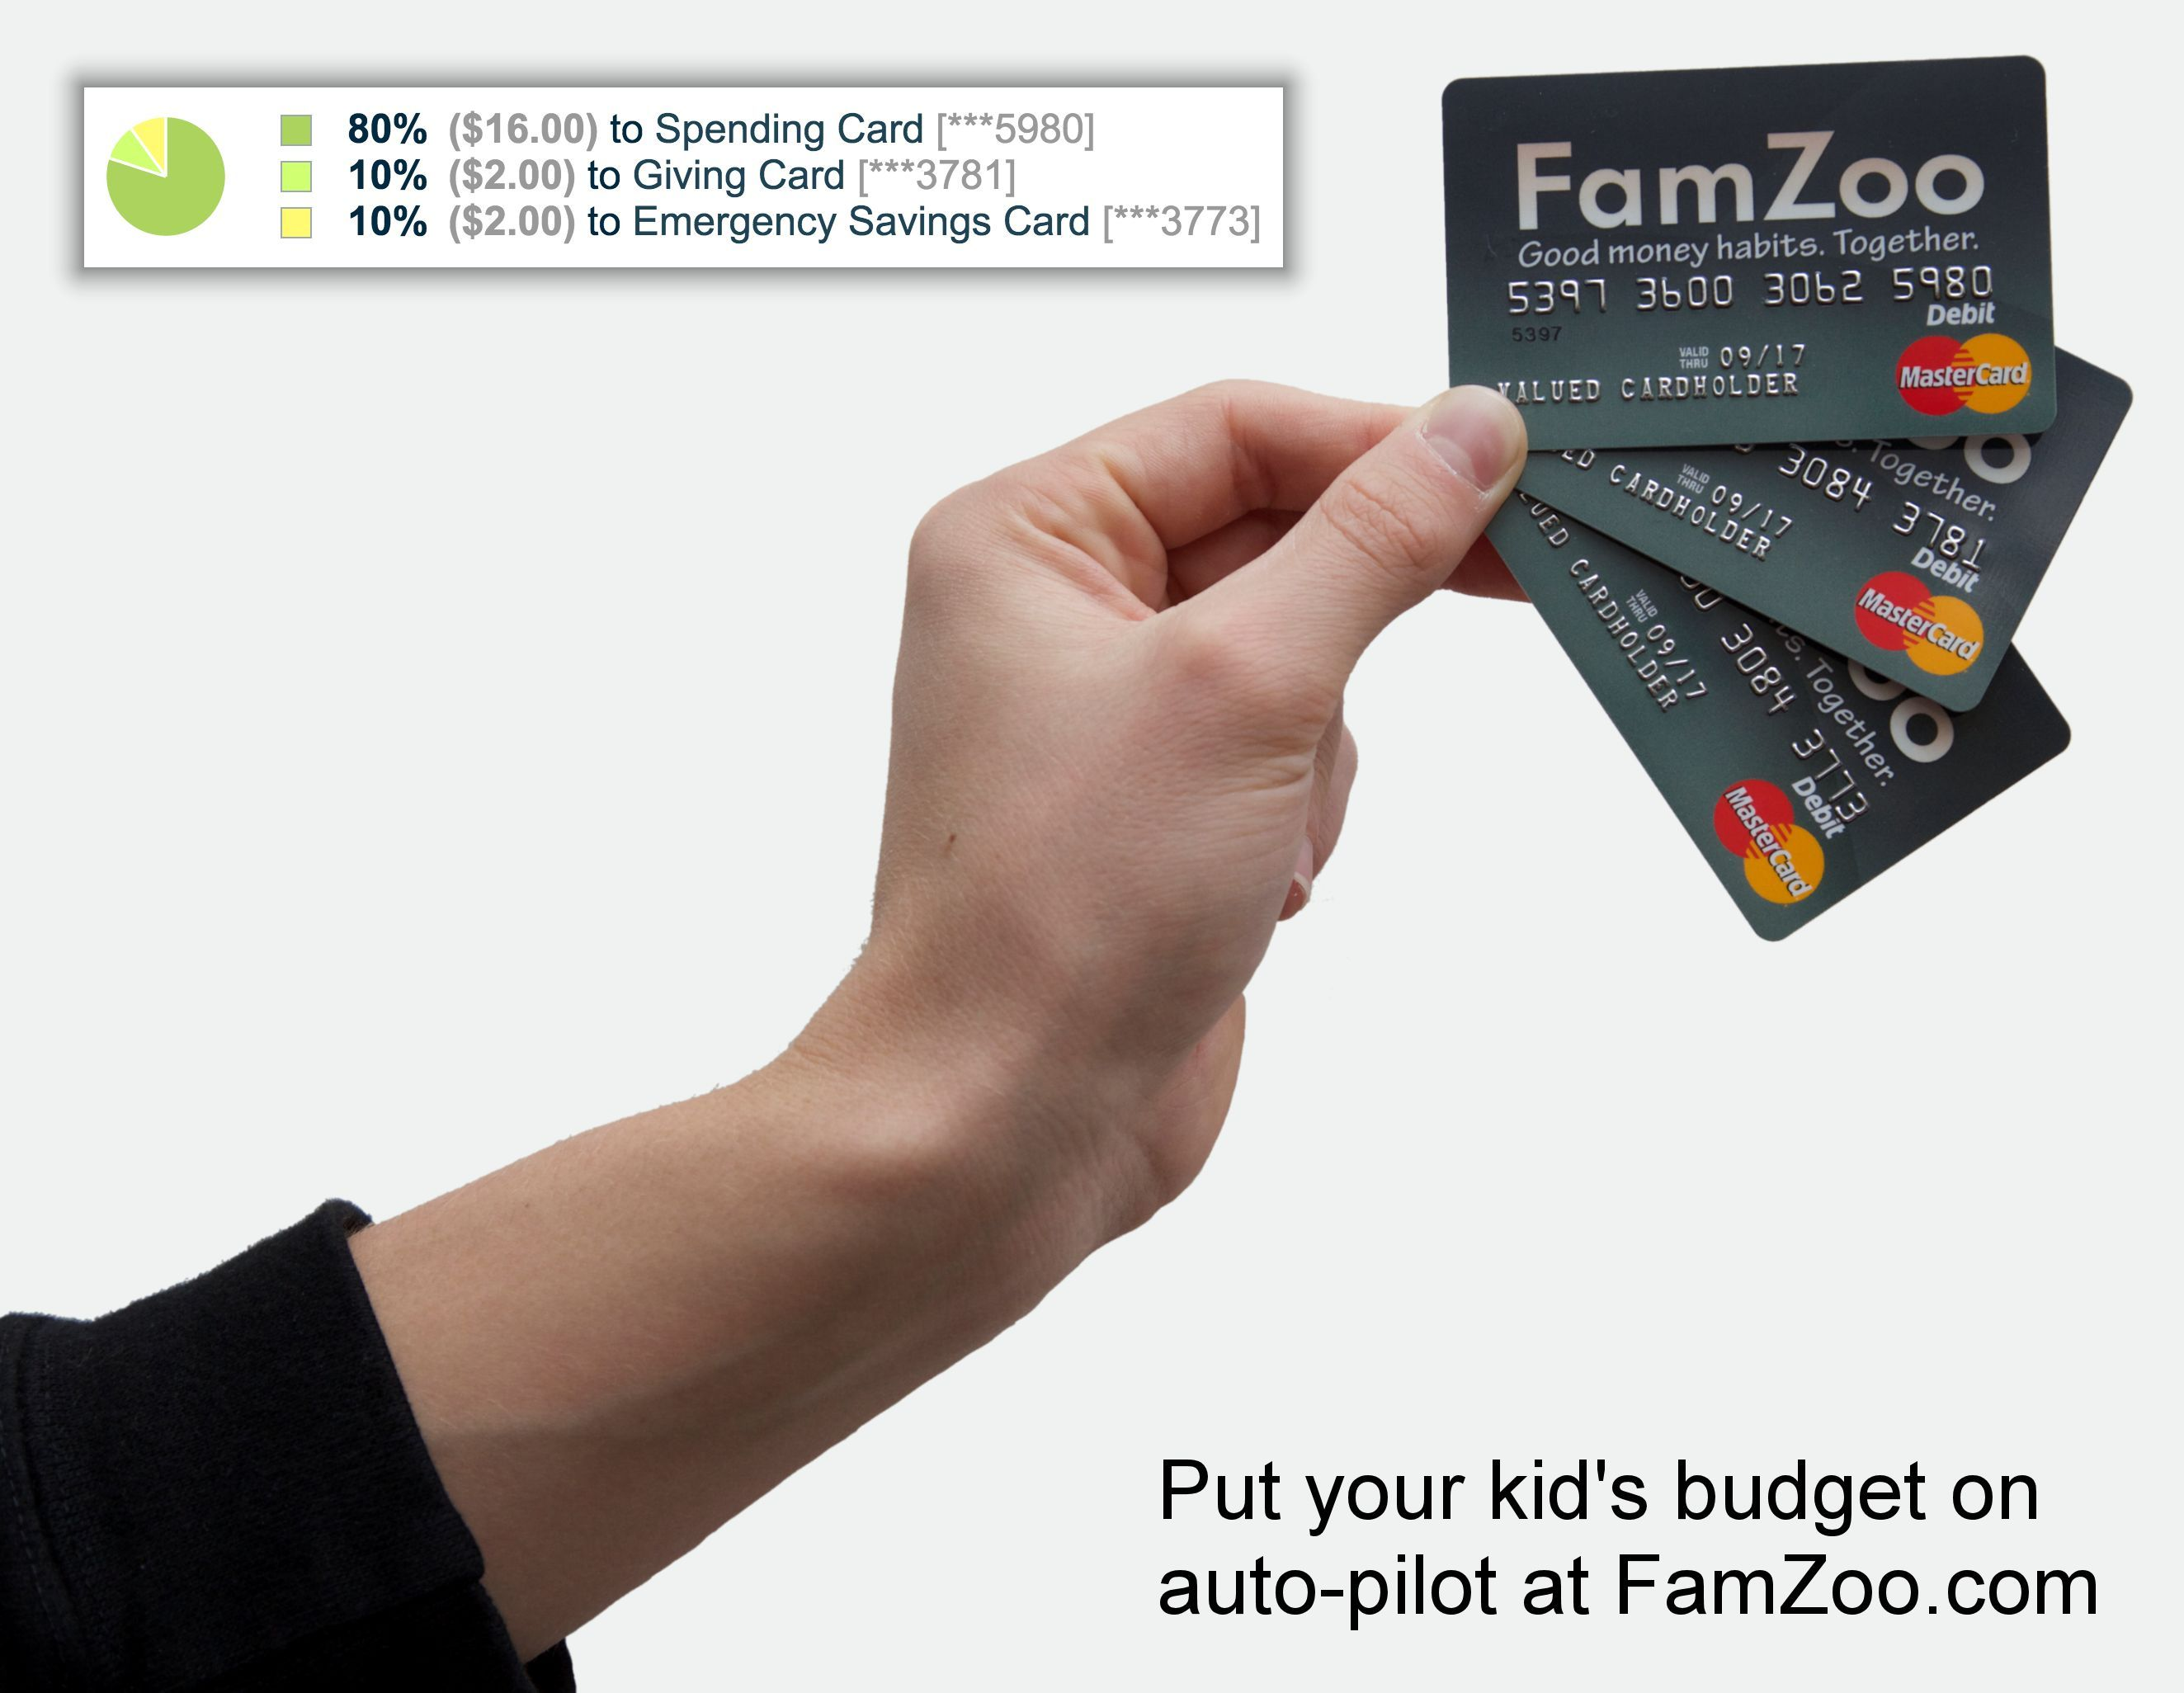 Famzoos prepaid cards are a simple way to put your kids